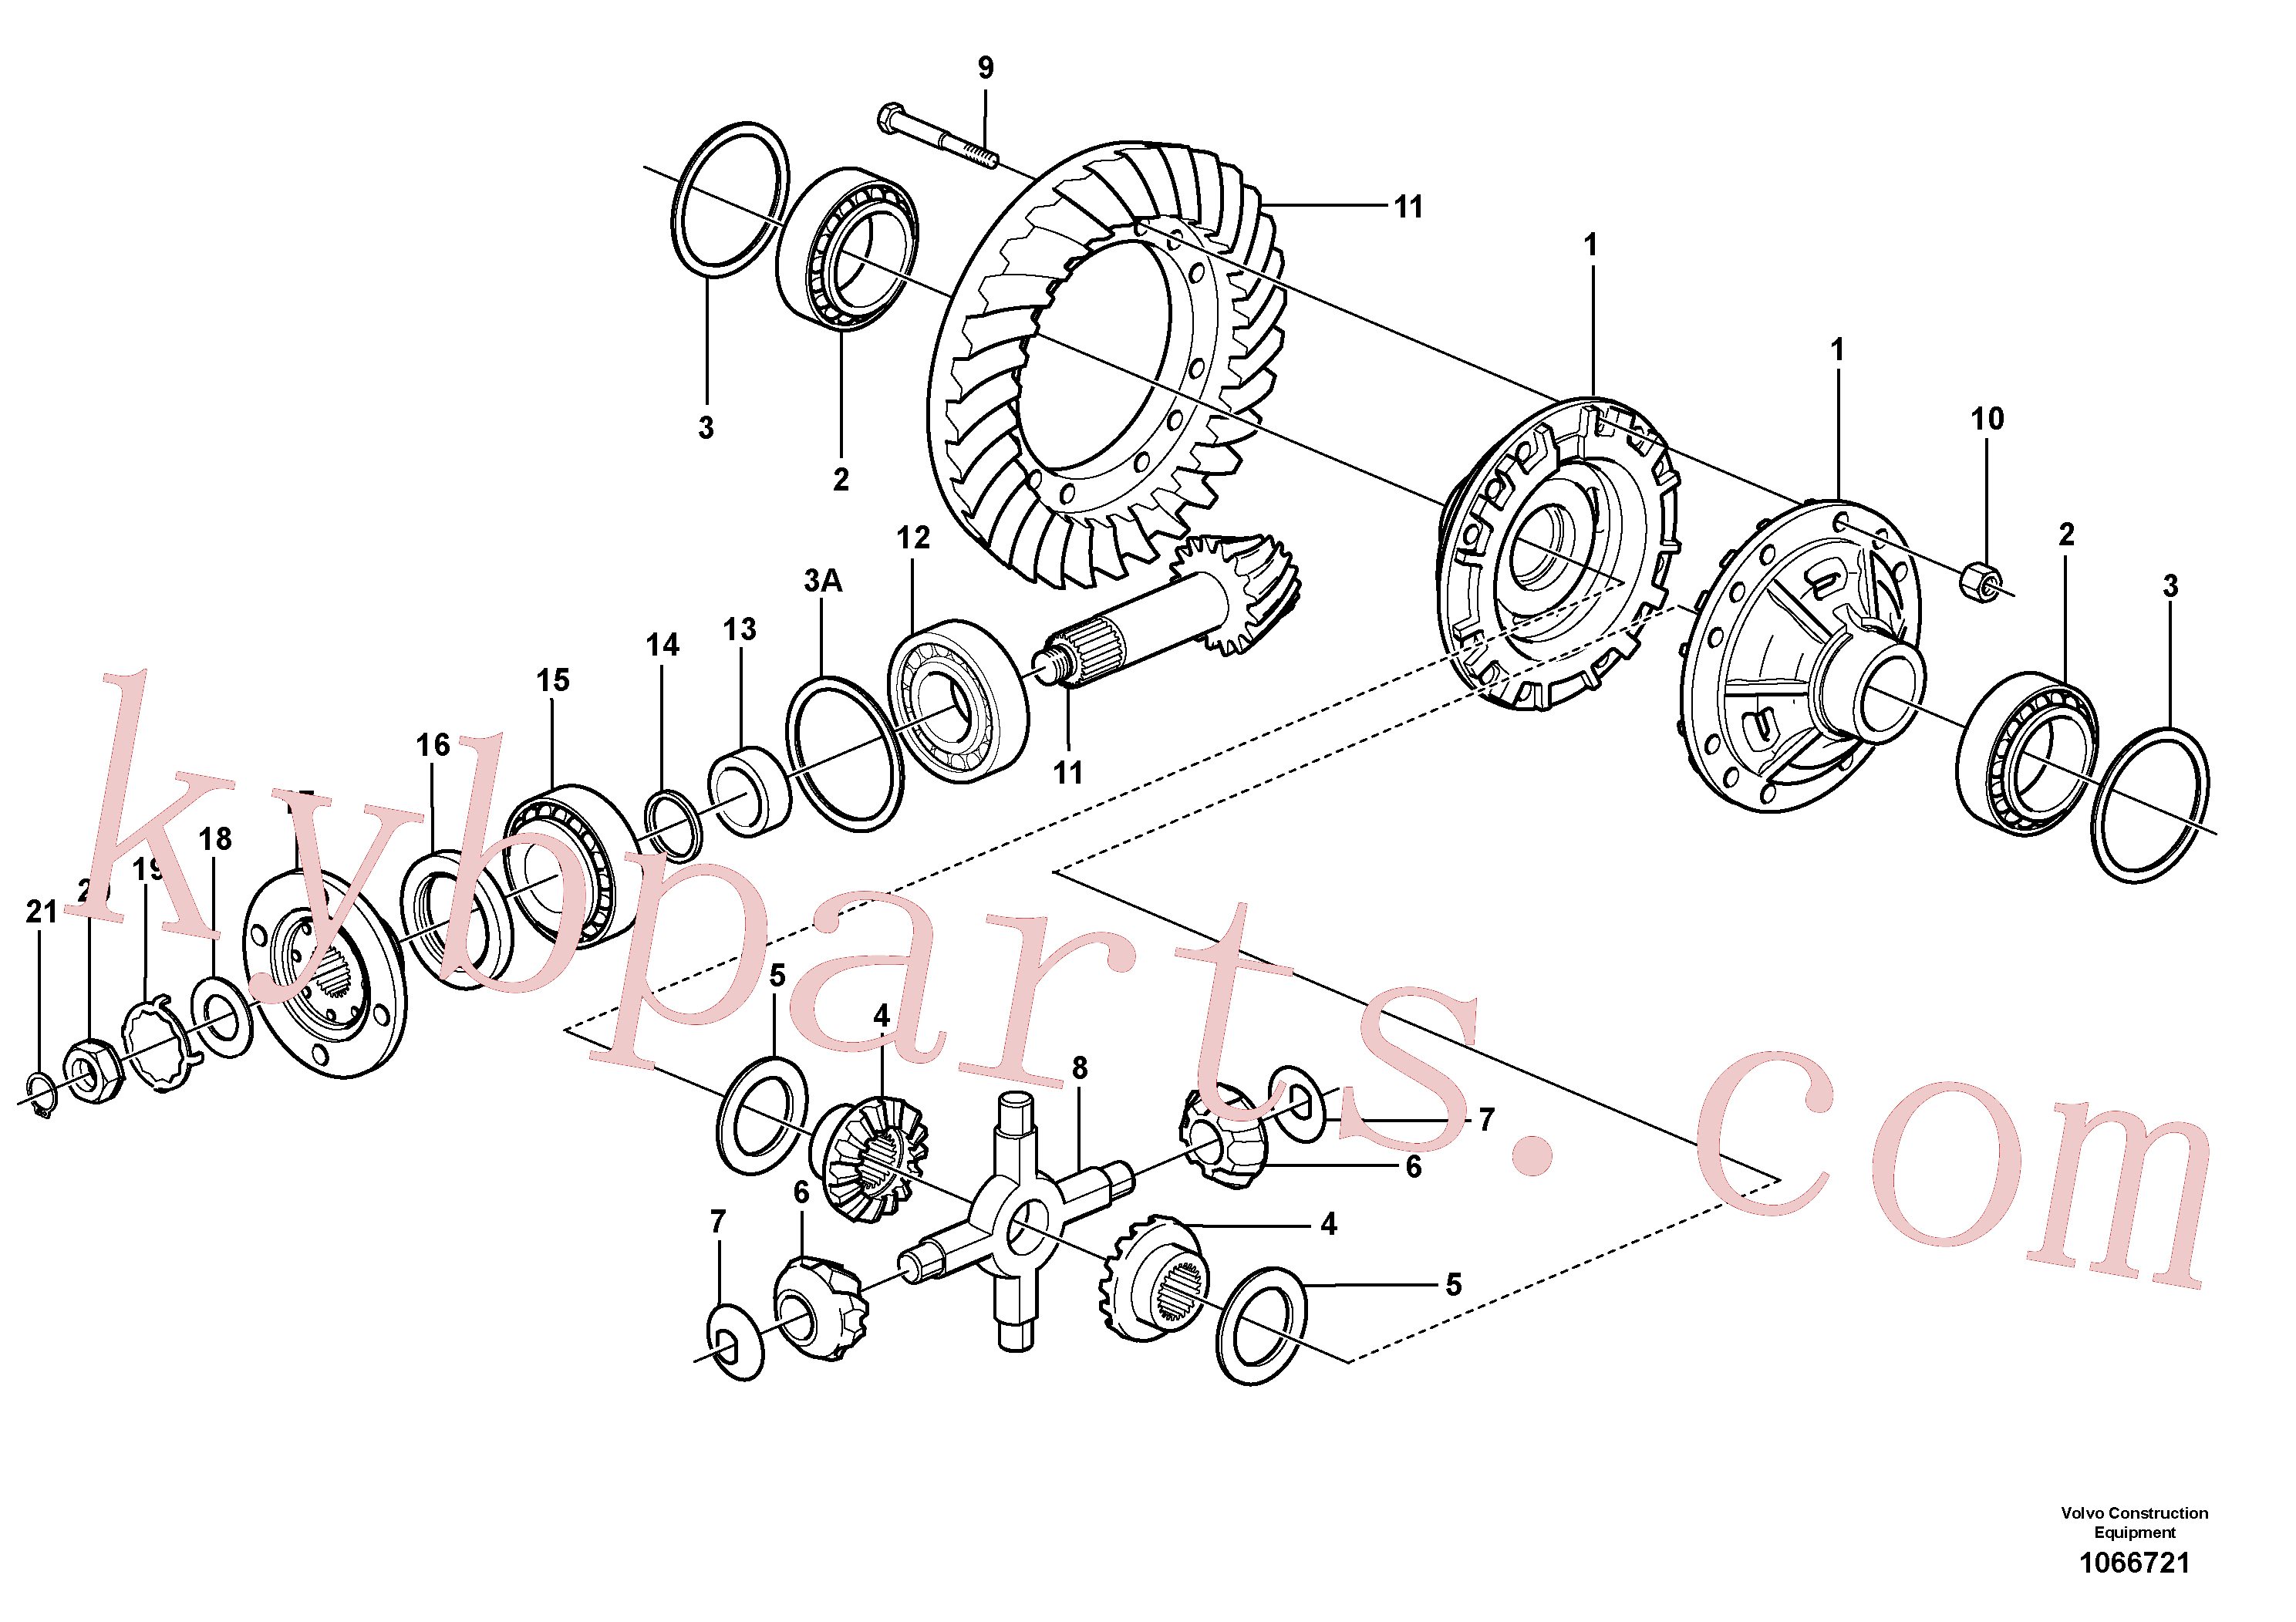 VOE17210900 for Volvo Final drive, rear(1066721 assembly)